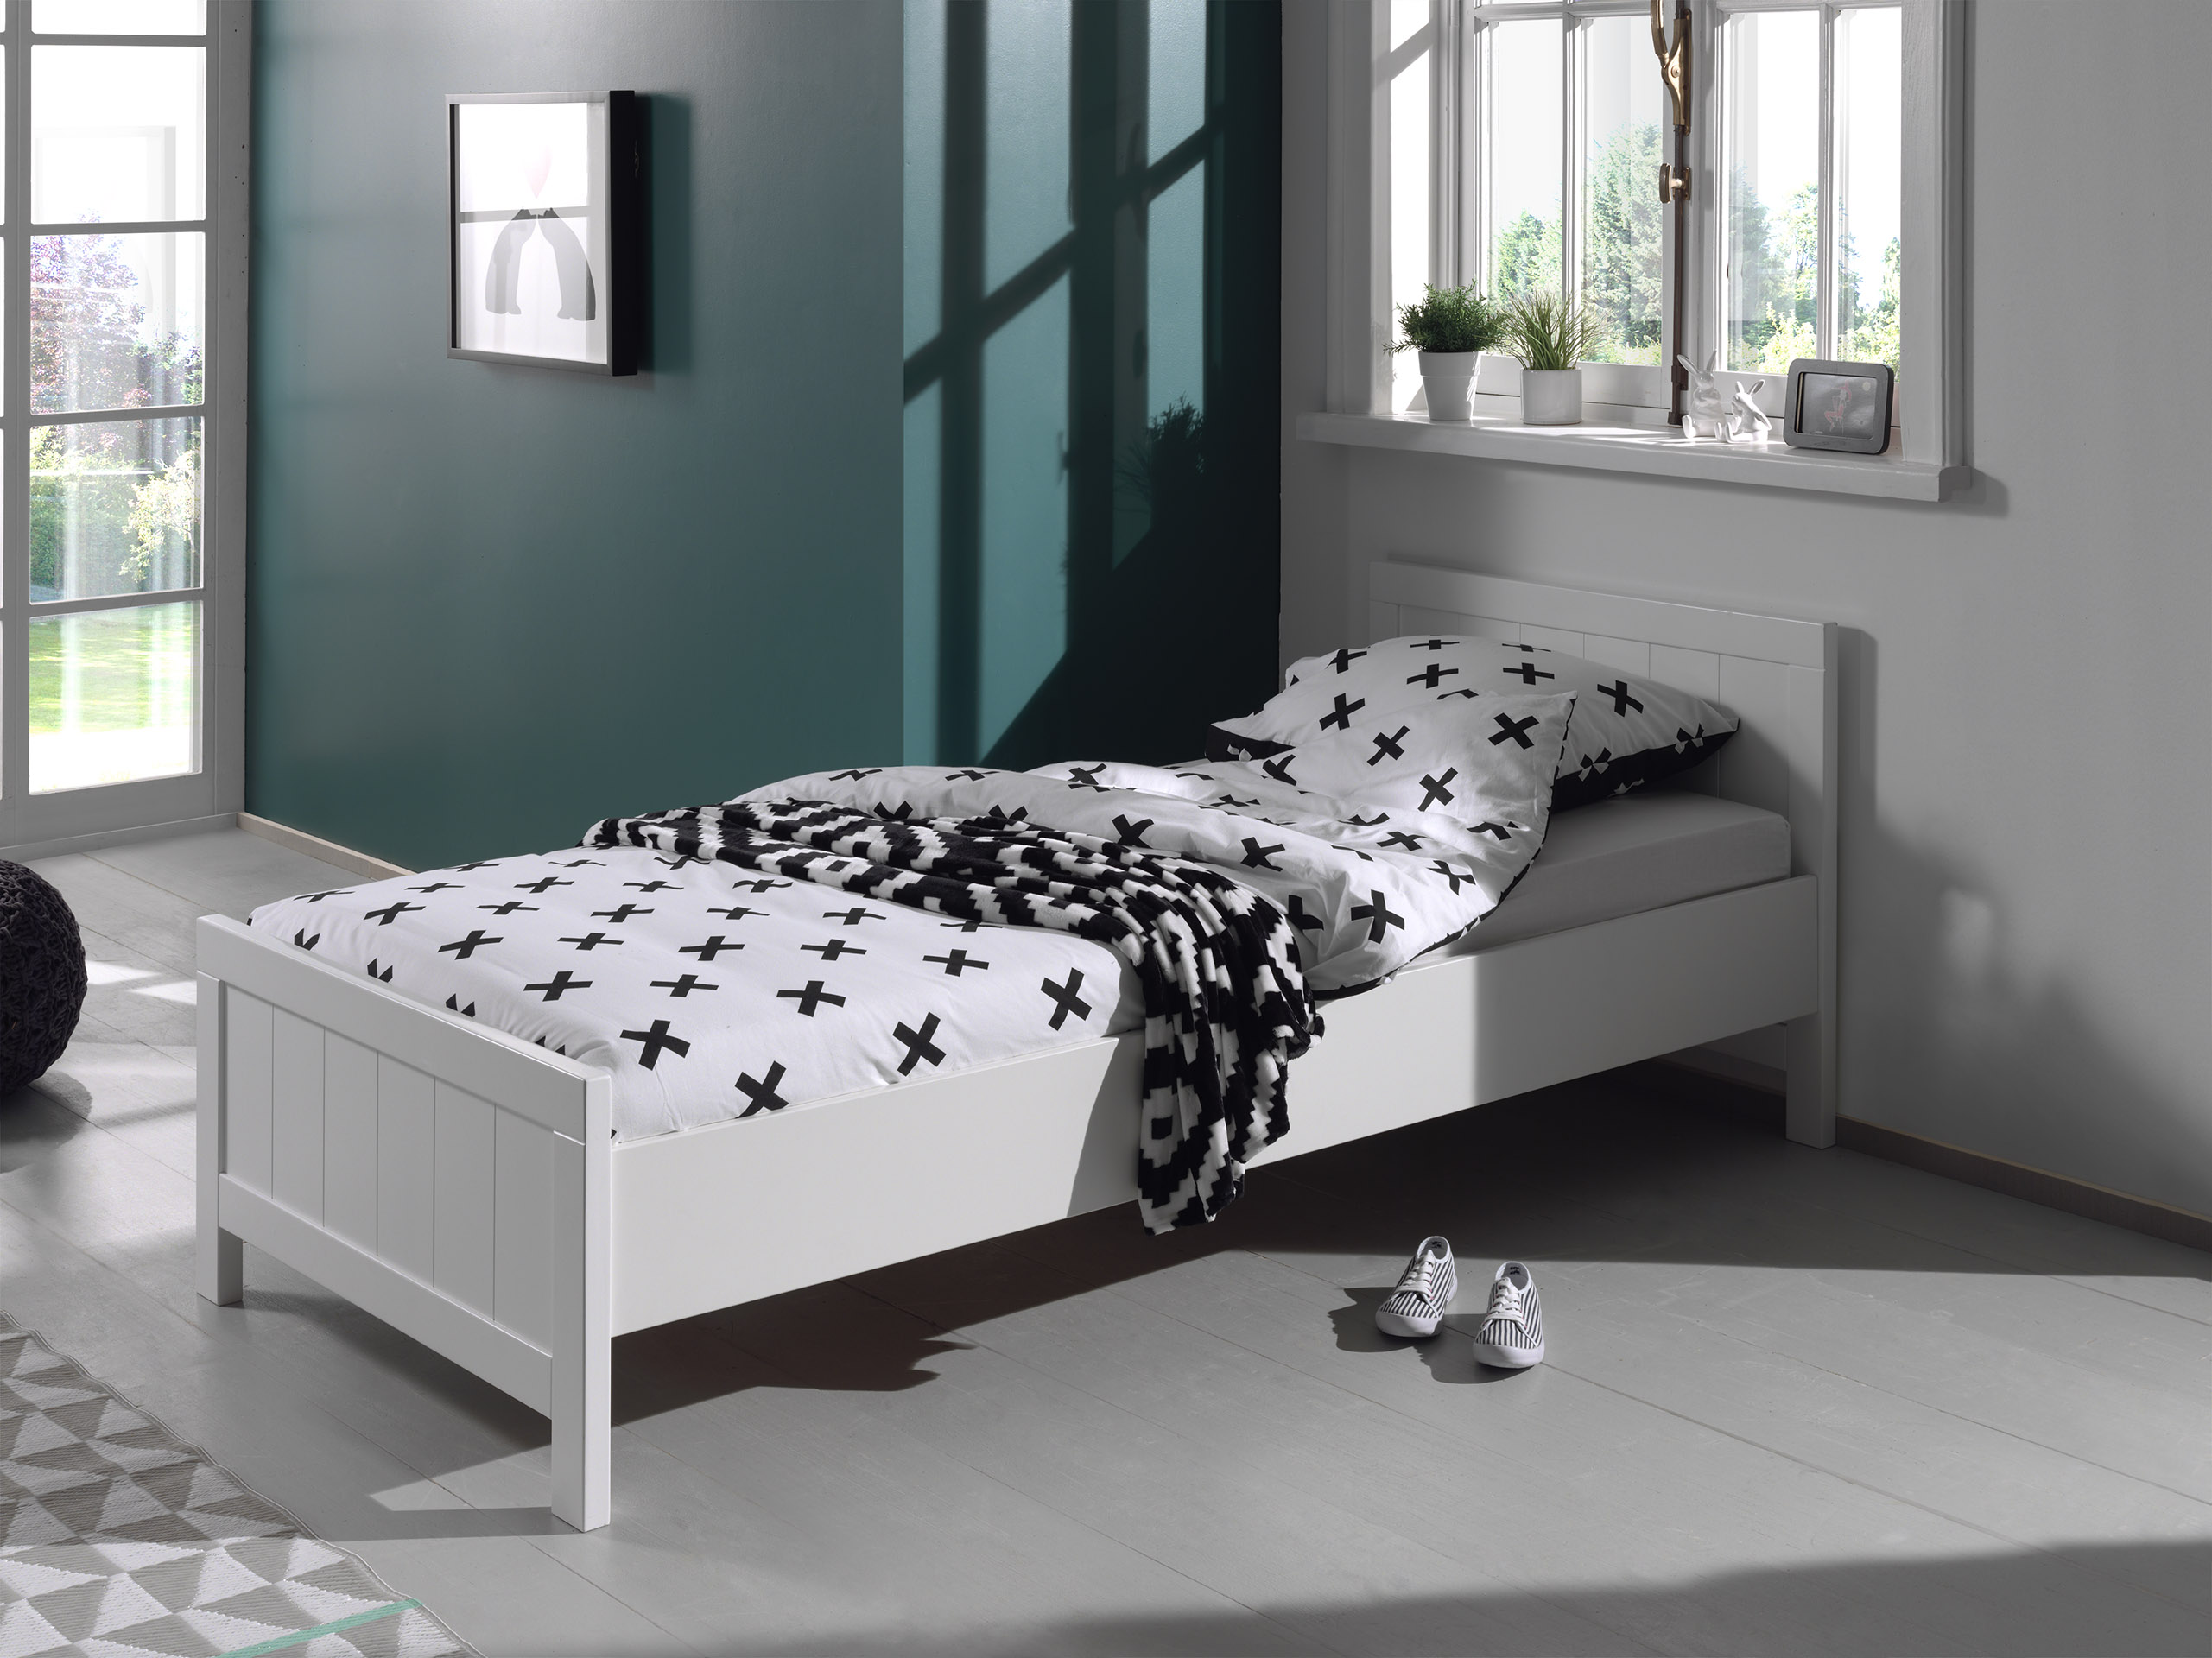 lit 1 personne en bois laqu blanc 90x200cm erick. Black Bedroom Furniture Sets. Home Design Ideas